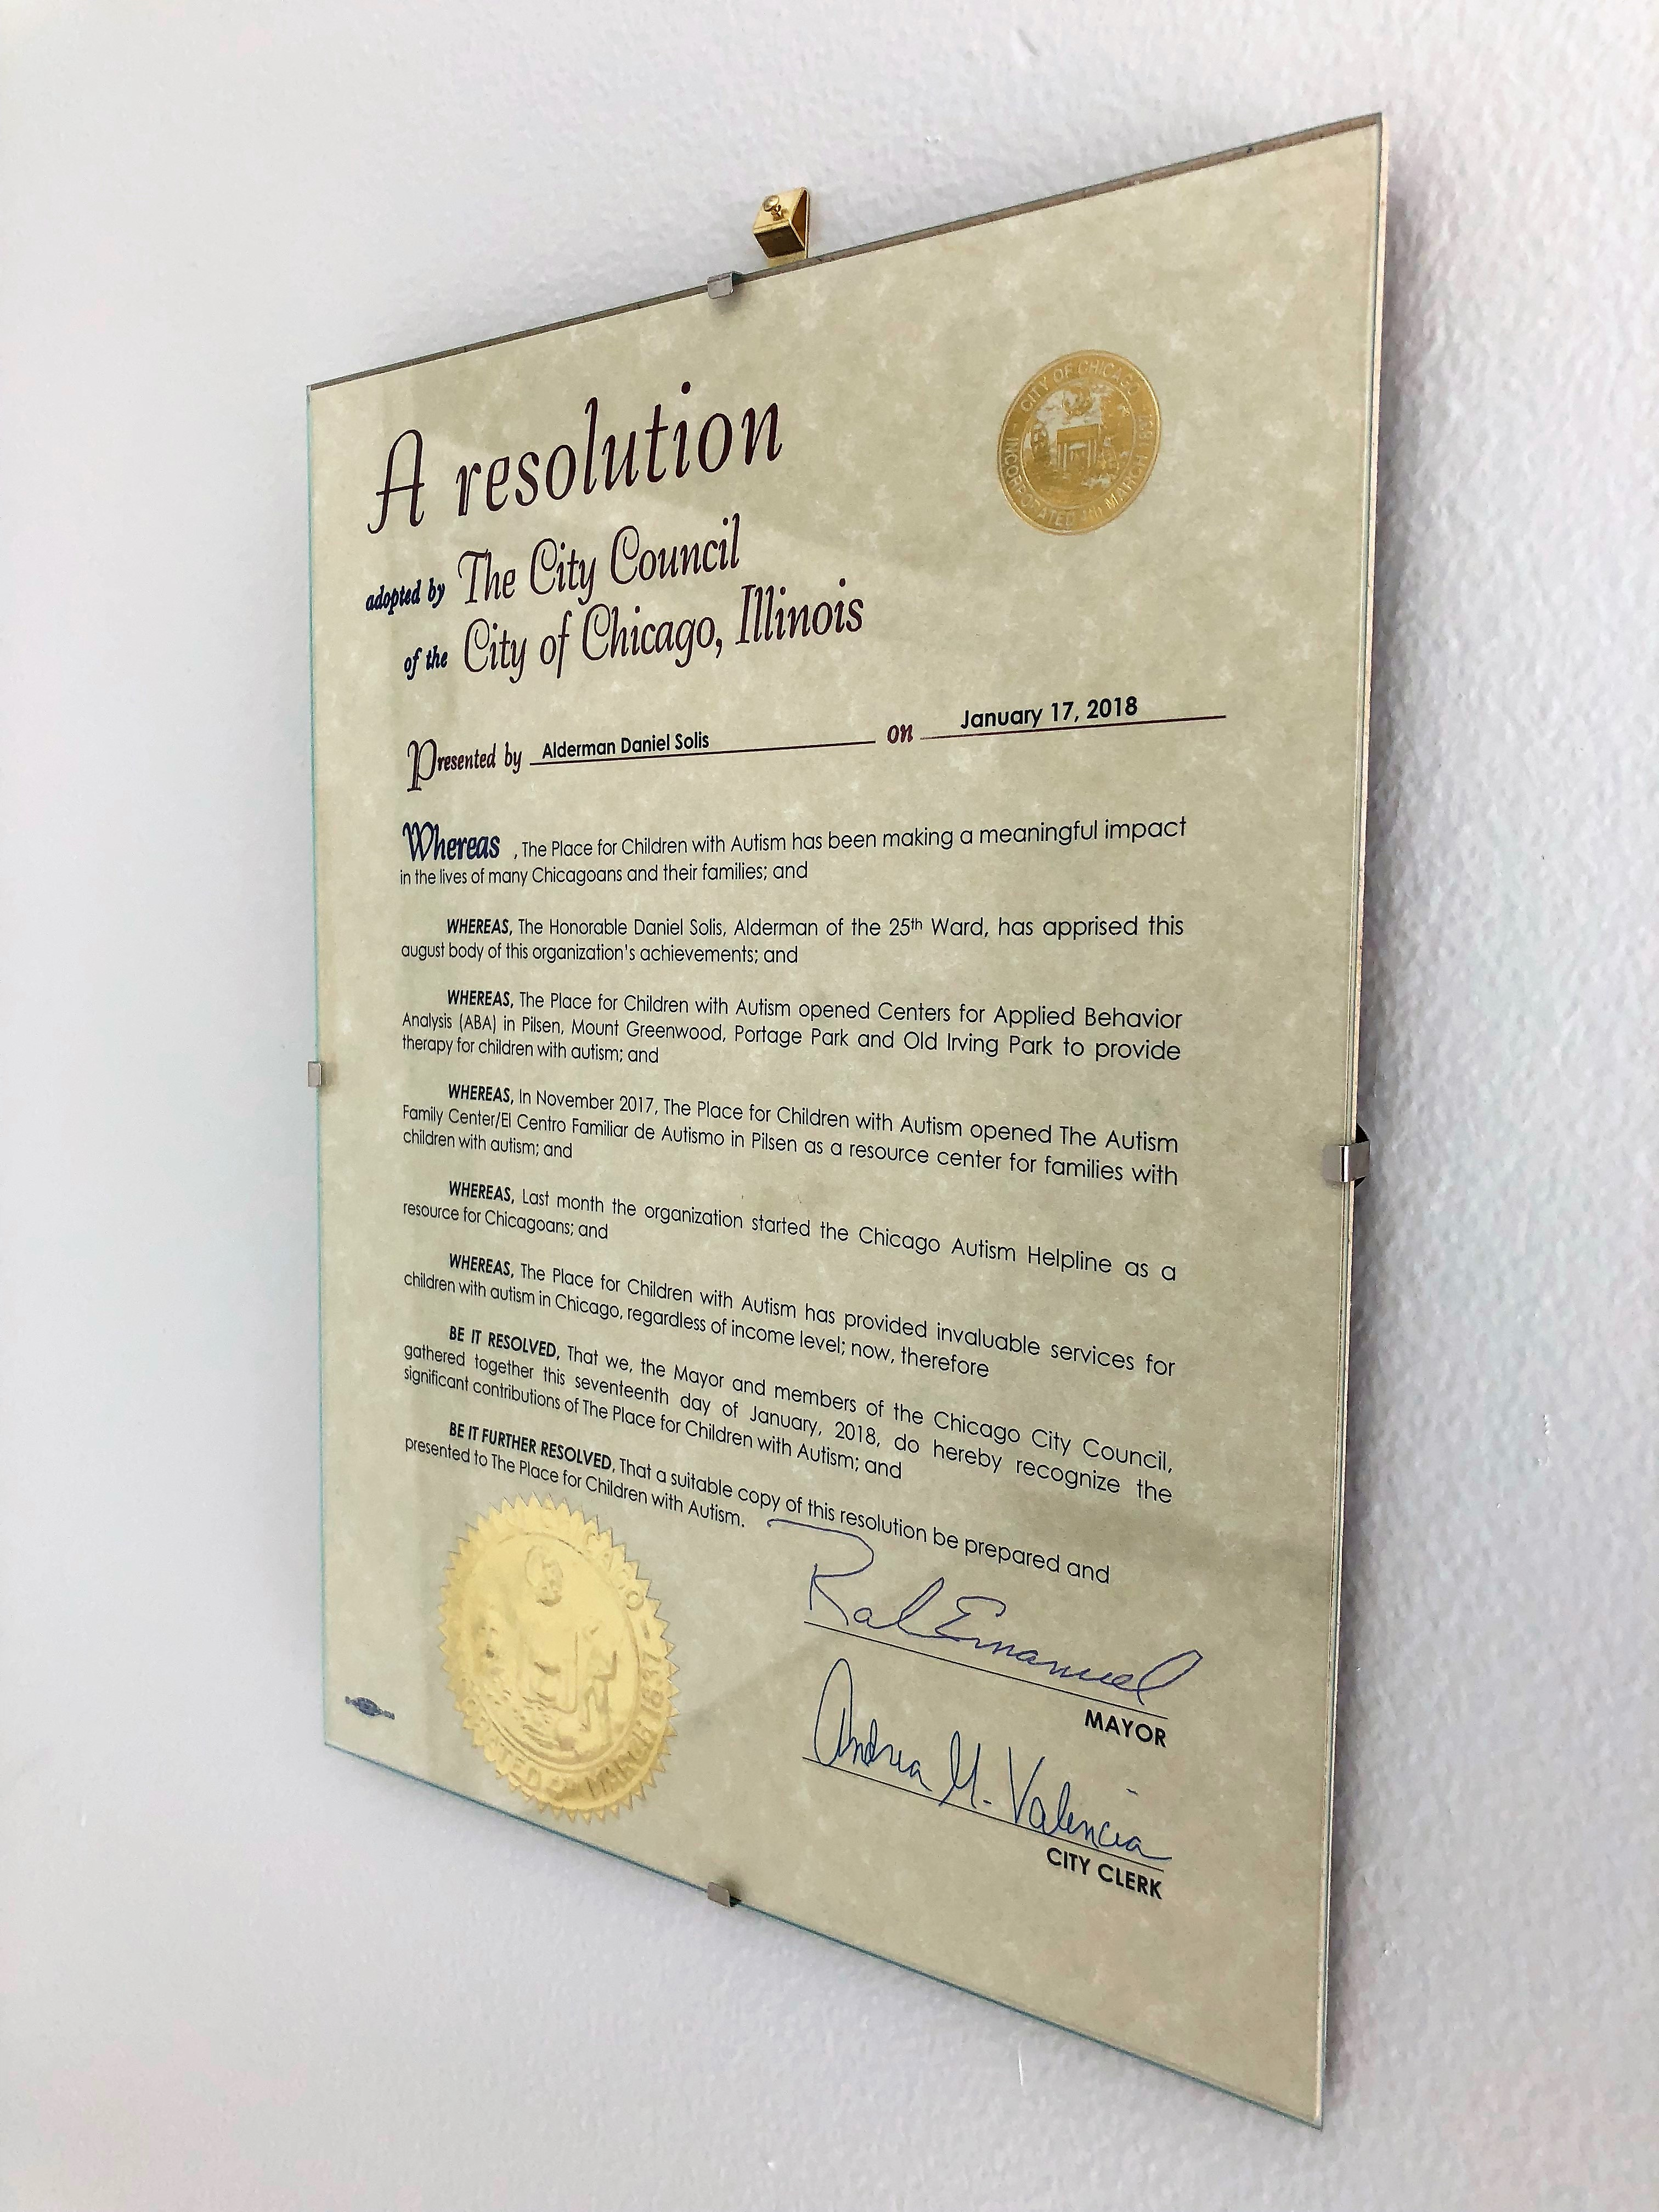 The Place Presented with Resolution by Alderman Solis and Mayor Rahm Emanuel